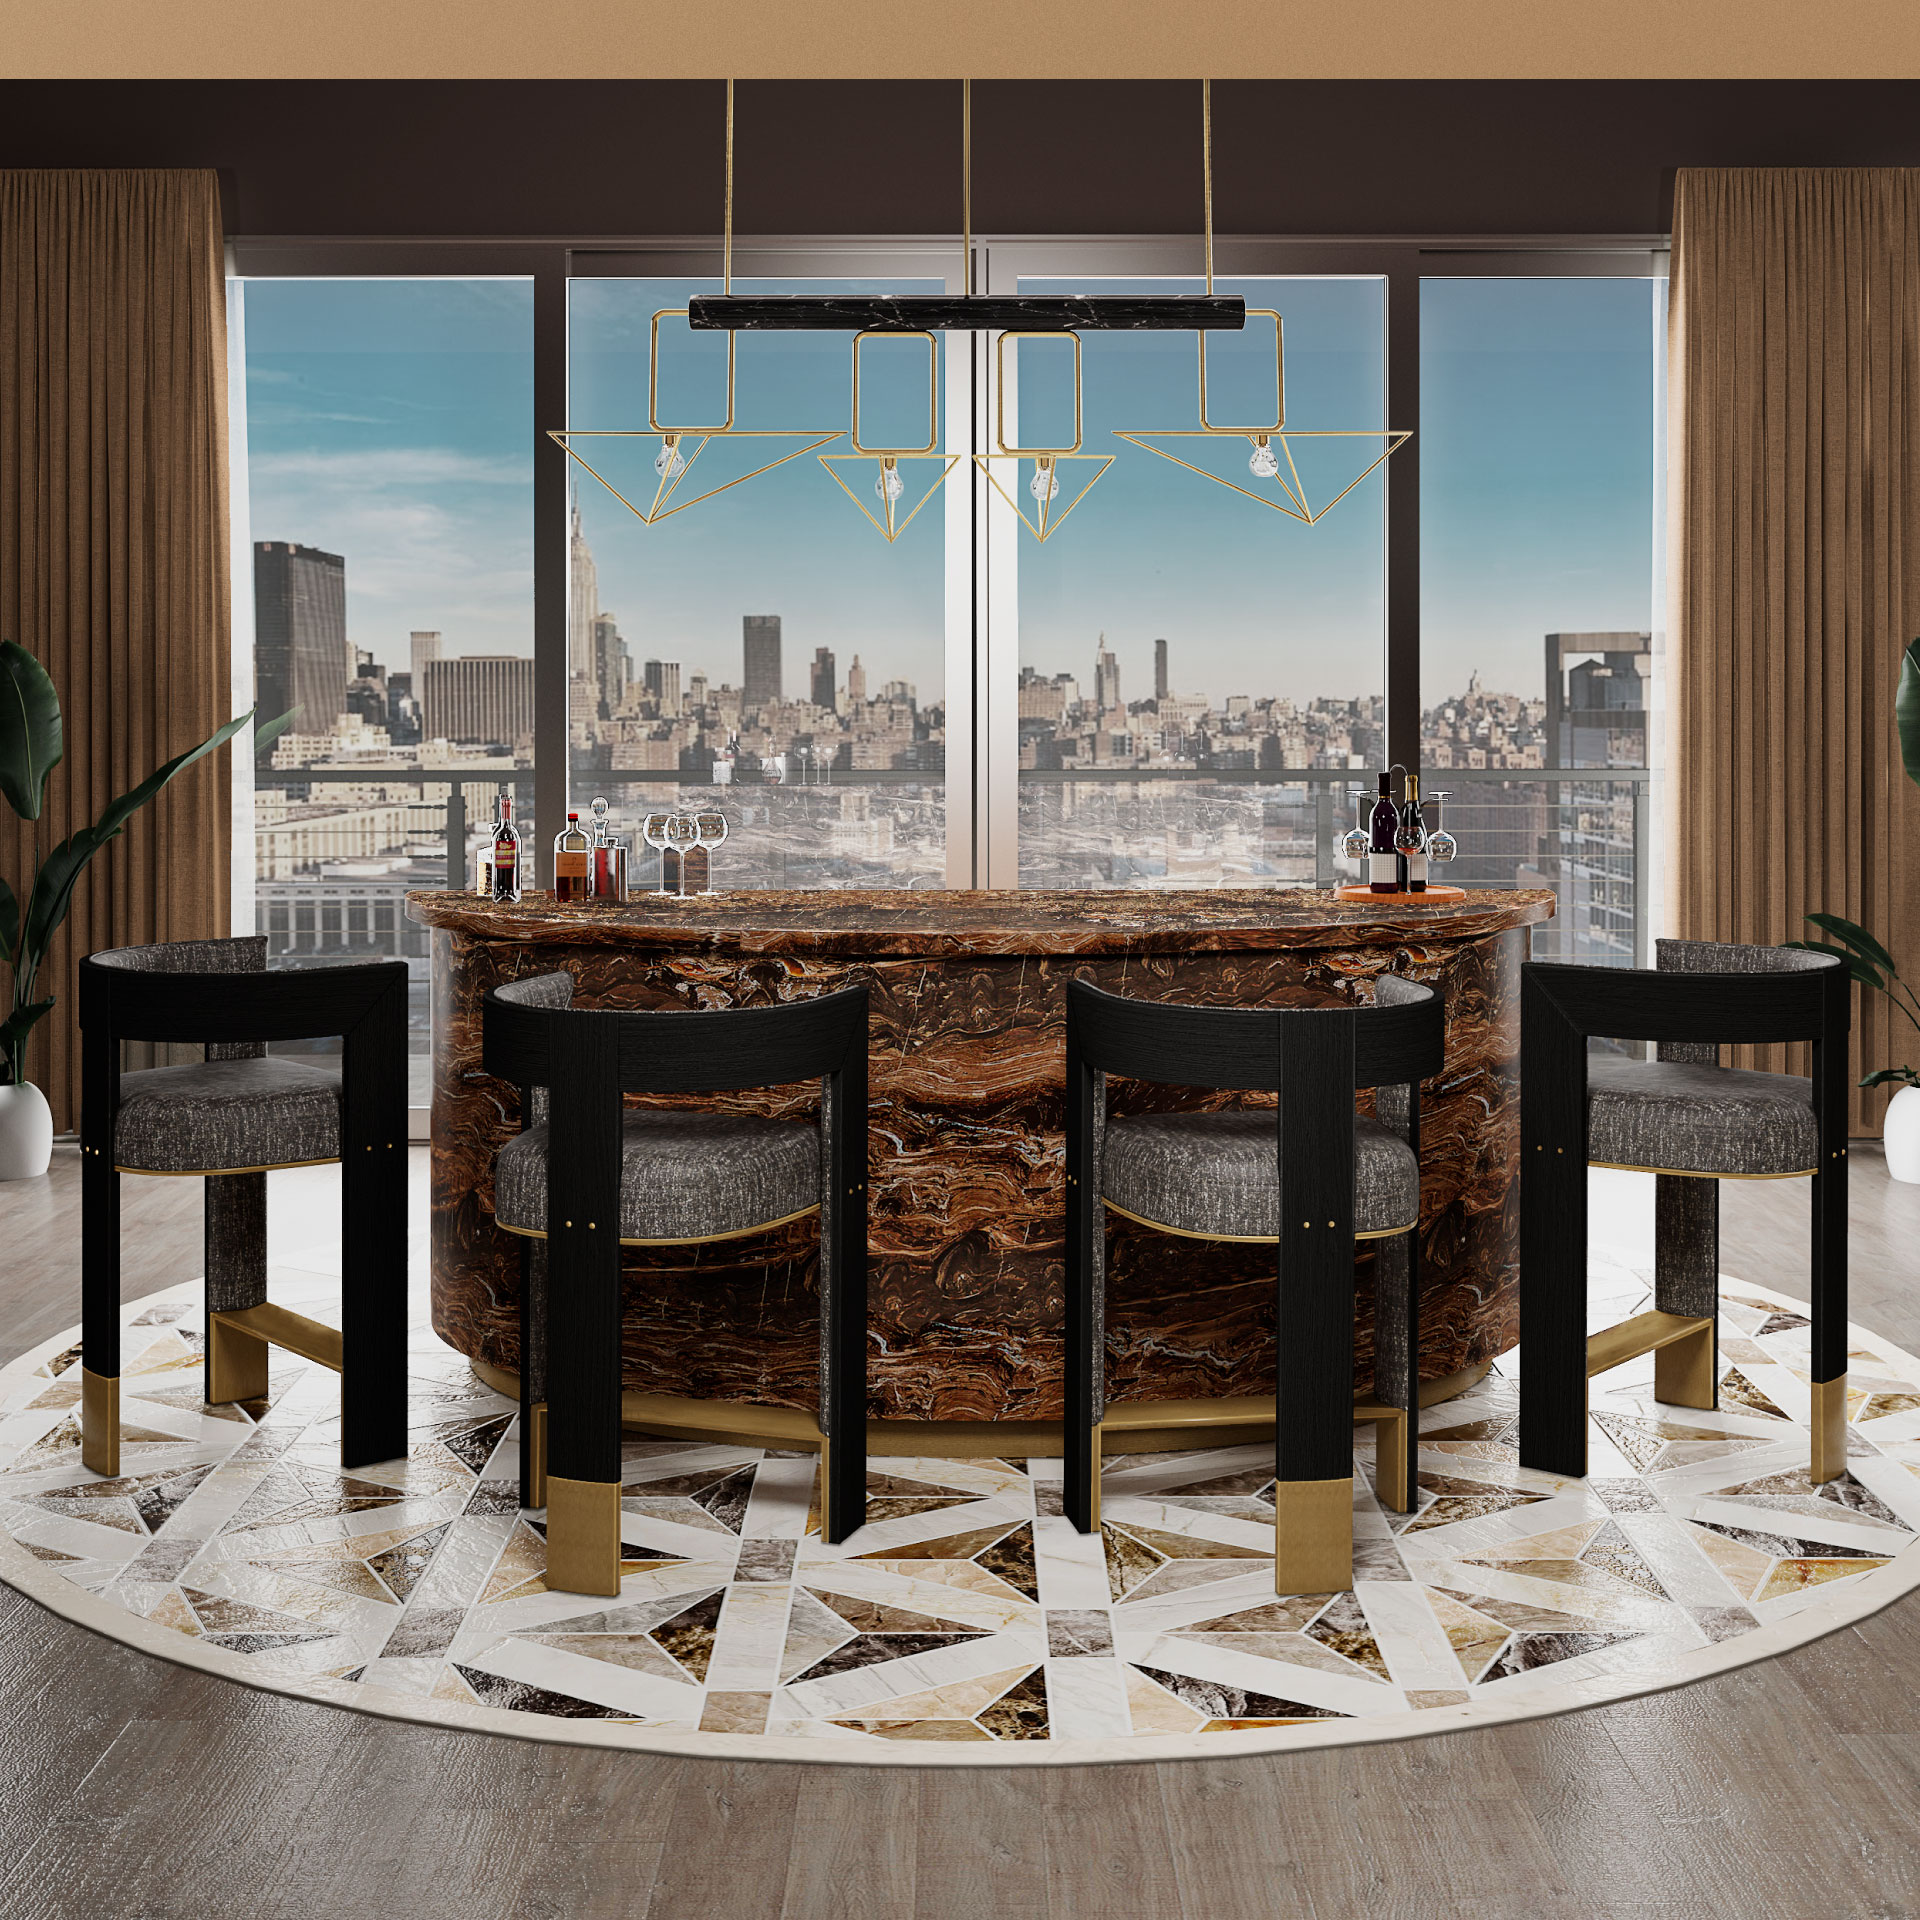 Brooklyn Bar Chair and White House Suspension Lamp